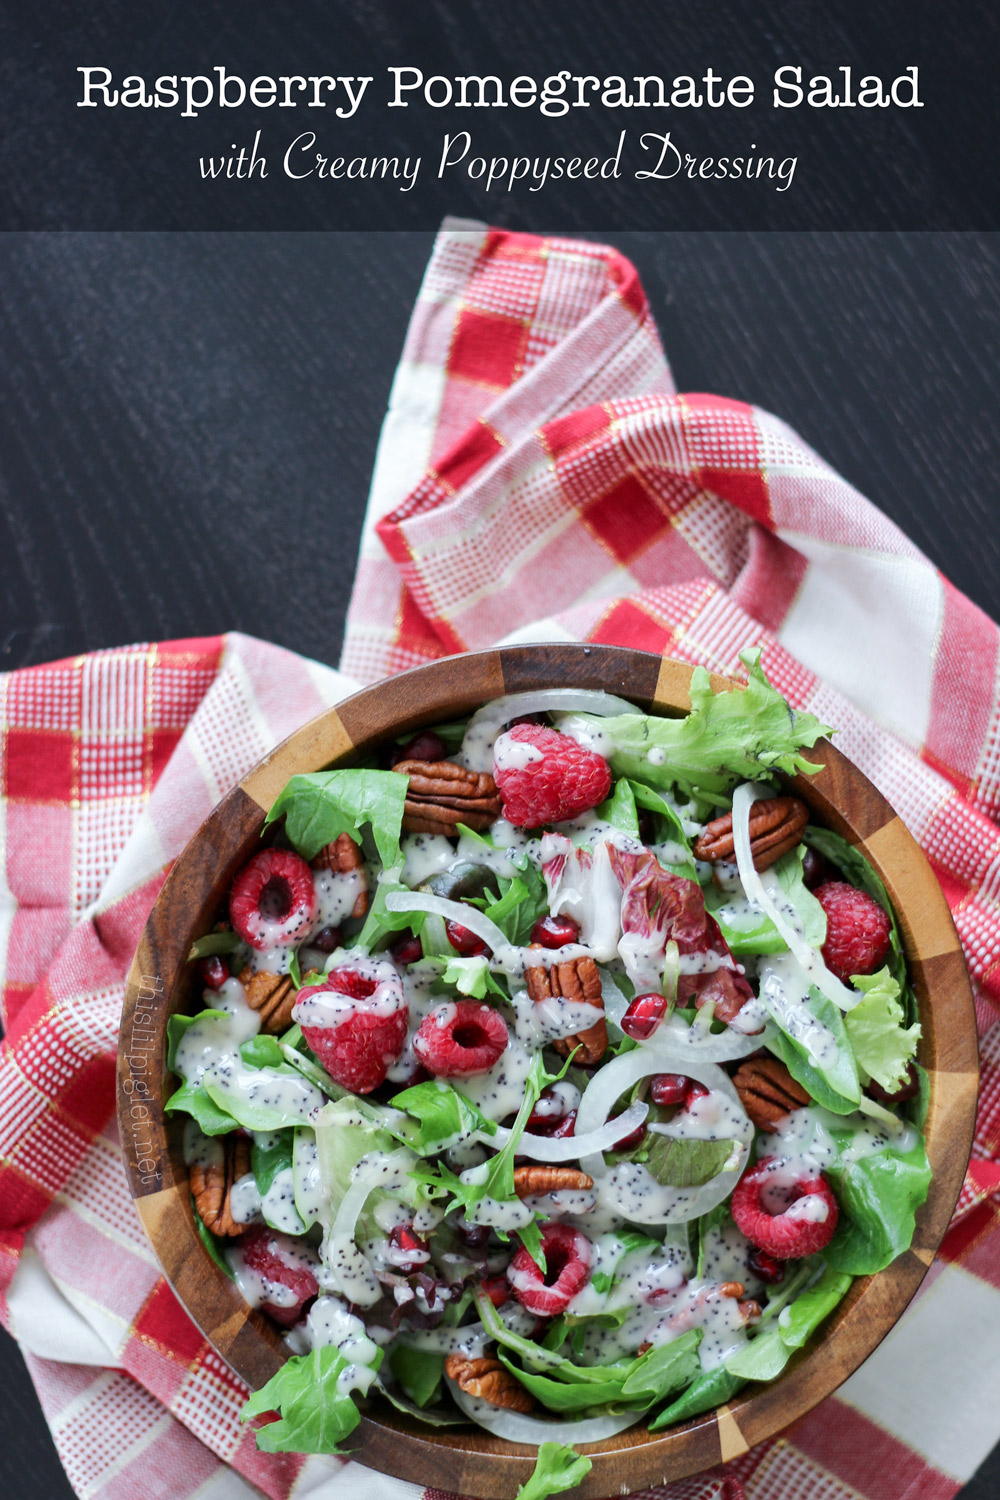 Raspberry Pomegranate Salad with Creamy Poppyseed Dressing